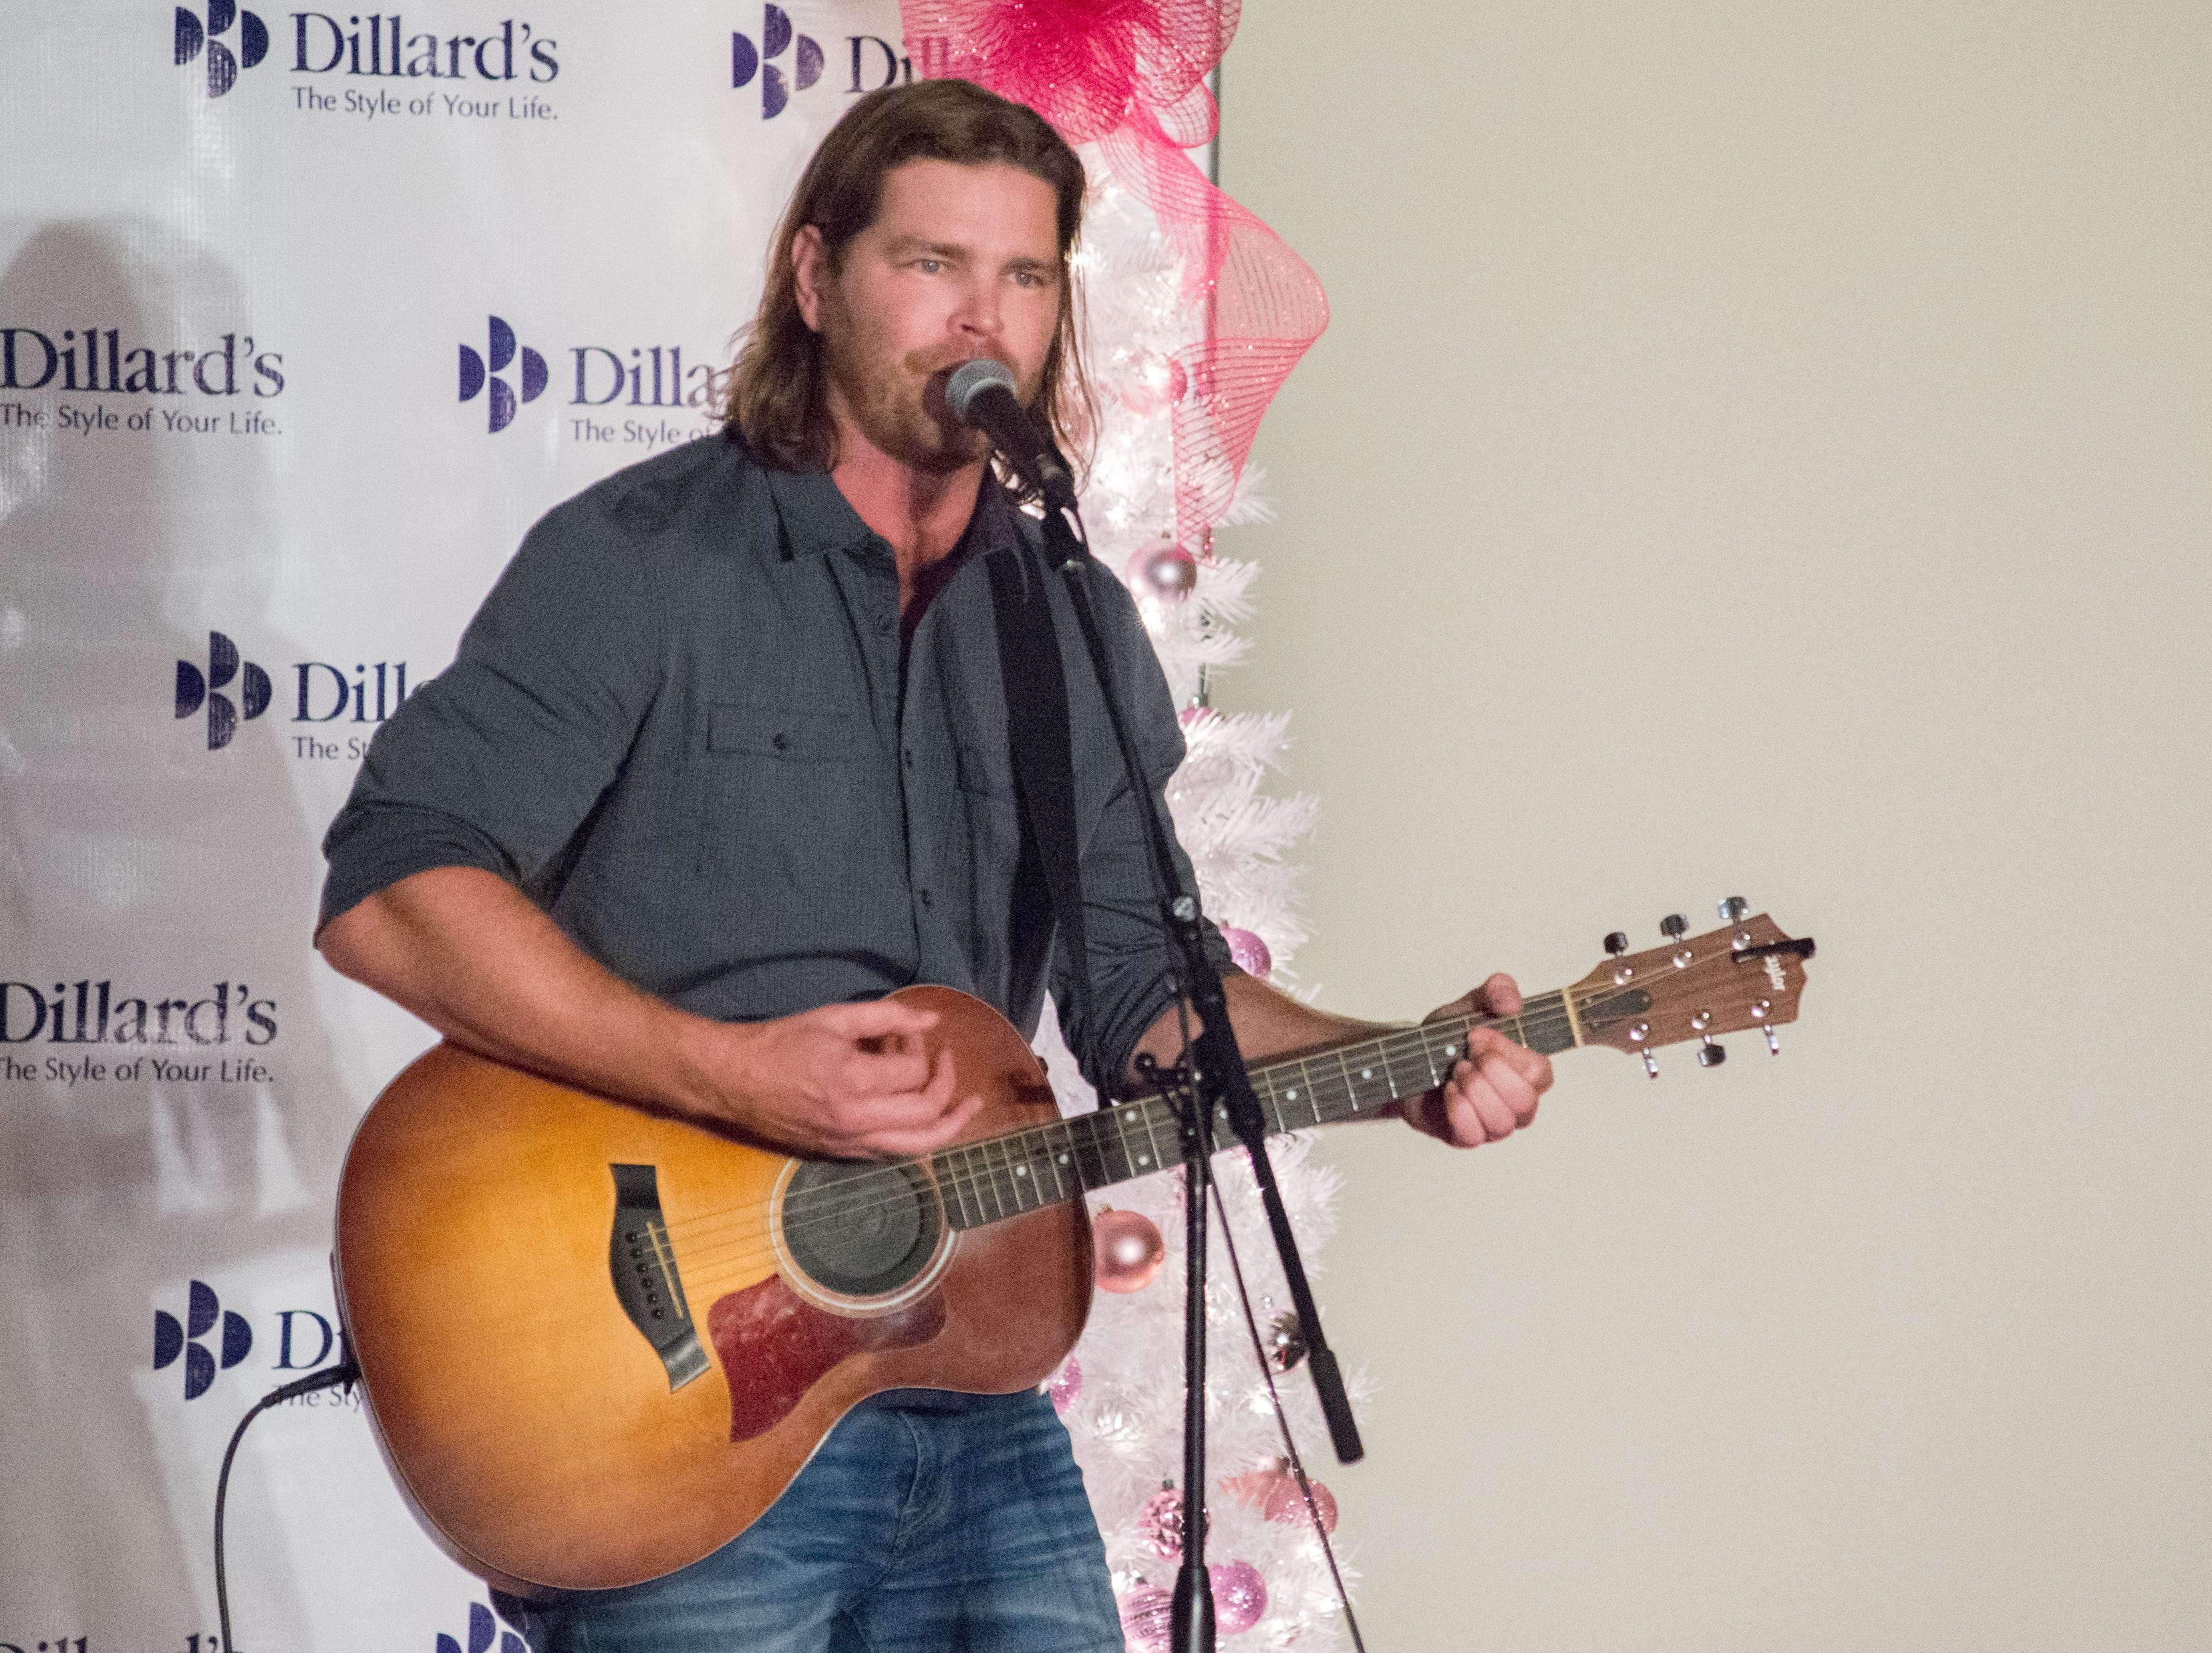 Travis Rice performs during the Garlands & Glitter Fashion Show by Dillard's presented by Hendersonville HolidayFest at Bluegrass Yacht and Country Club in Hendersonville on Saturday, Nov. 3. The event was to benefit the YMCA After Breast Cancer Program.